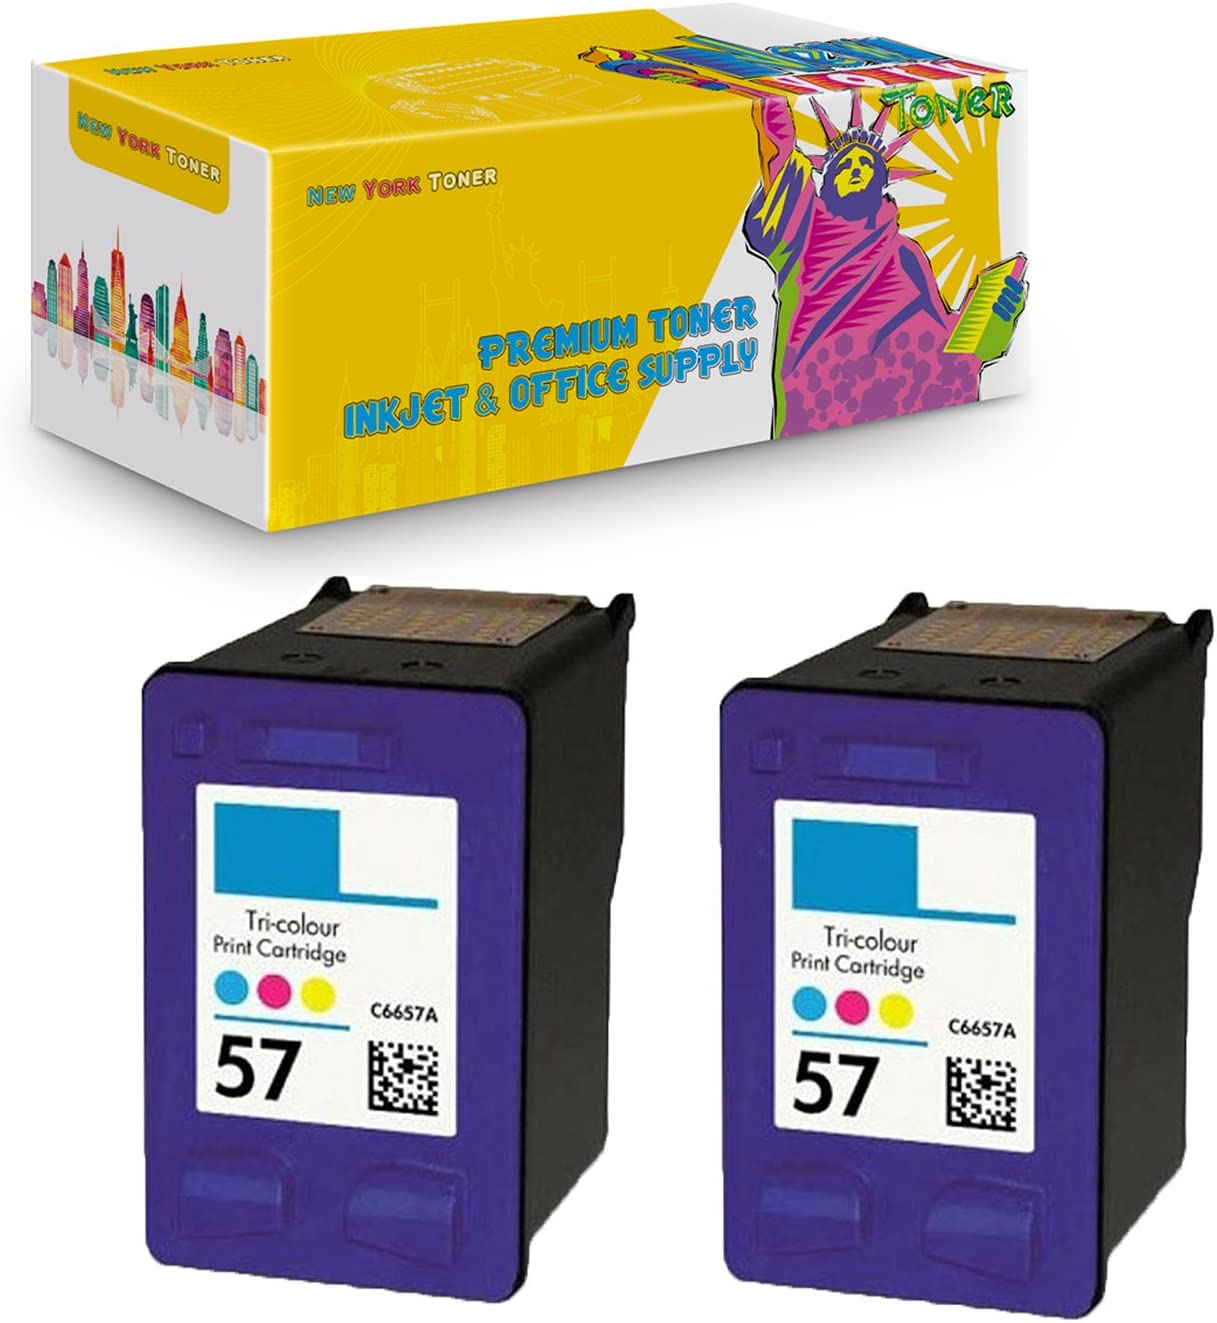 NYT Compatible High Yield Inkjet Cartridge Replacement for HP C6657 for HP Officejet 4110 Color, 2-Pack 6100 6110 5510 HP 57